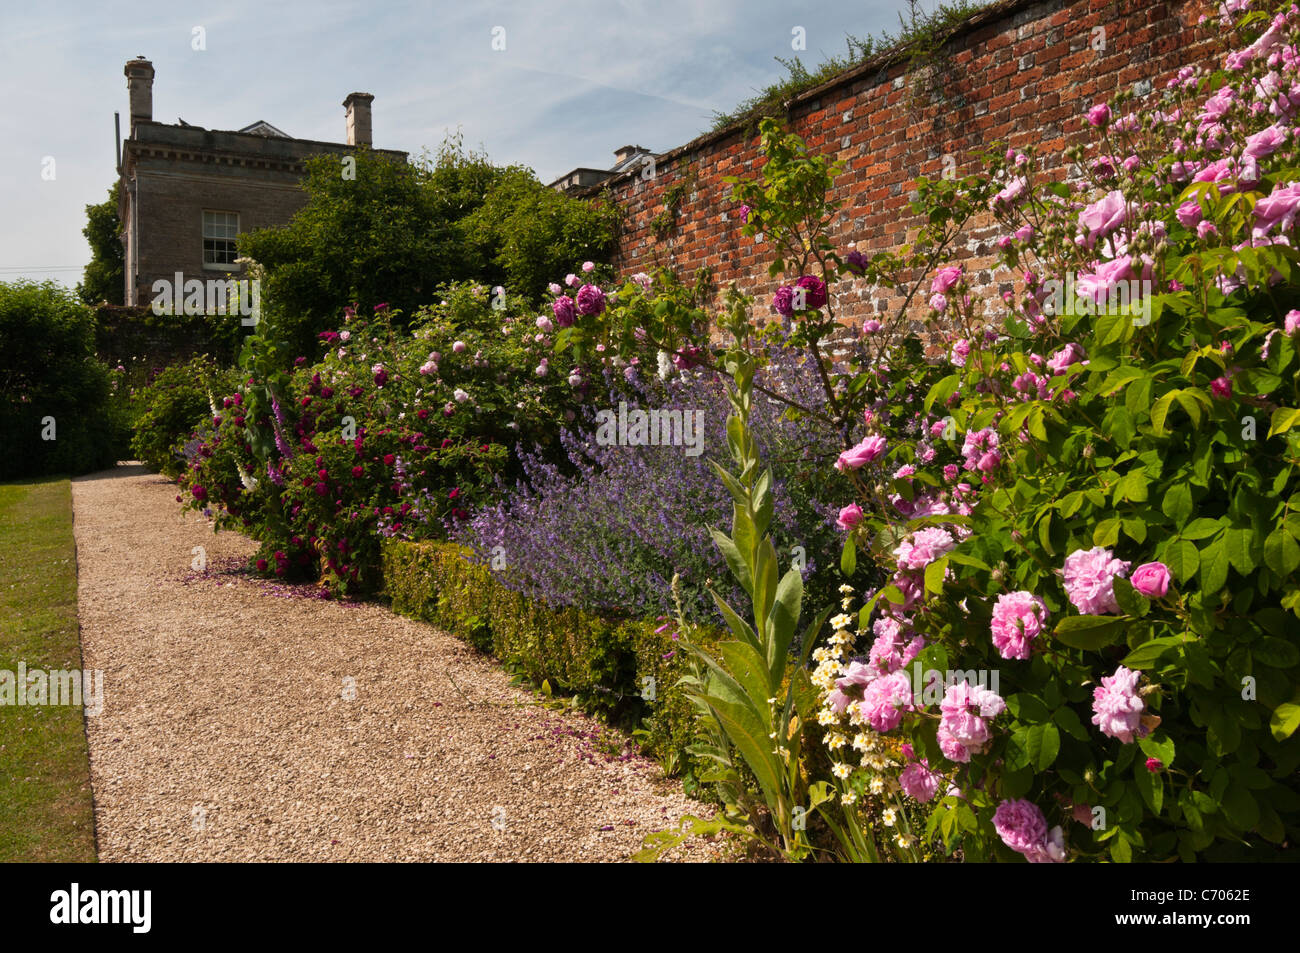 Sweet Herbaceous Border Walled Garden Stock Photos  Herbaceous Border  With Exquisite A Glimpse Of Rousham House Seen From Within The Walled Garden Beside A  Colourful Herbaceous Border With Adorable Garden Accessories Sale Also Joanna Lumley Garden Bridge In Addition Cardiff Garden Centre And Garden Weeding Tools As Well As Palmers Garden Centre Ullesthorpe Additionally Bushes For Garden From Alamycom With   Exquisite Herbaceous Border Walled Garden Stock Photos  Herbaceous Border  With Adorable A Glimpse Of Rousham House Seen From Within The Walled Garden Beside A  Colourful Herbaceous Border And Sweet Garden Accessories Sale Also Joanna Lumley Garden Bridge In Addition Cardiff Garden Centre From Alamycom